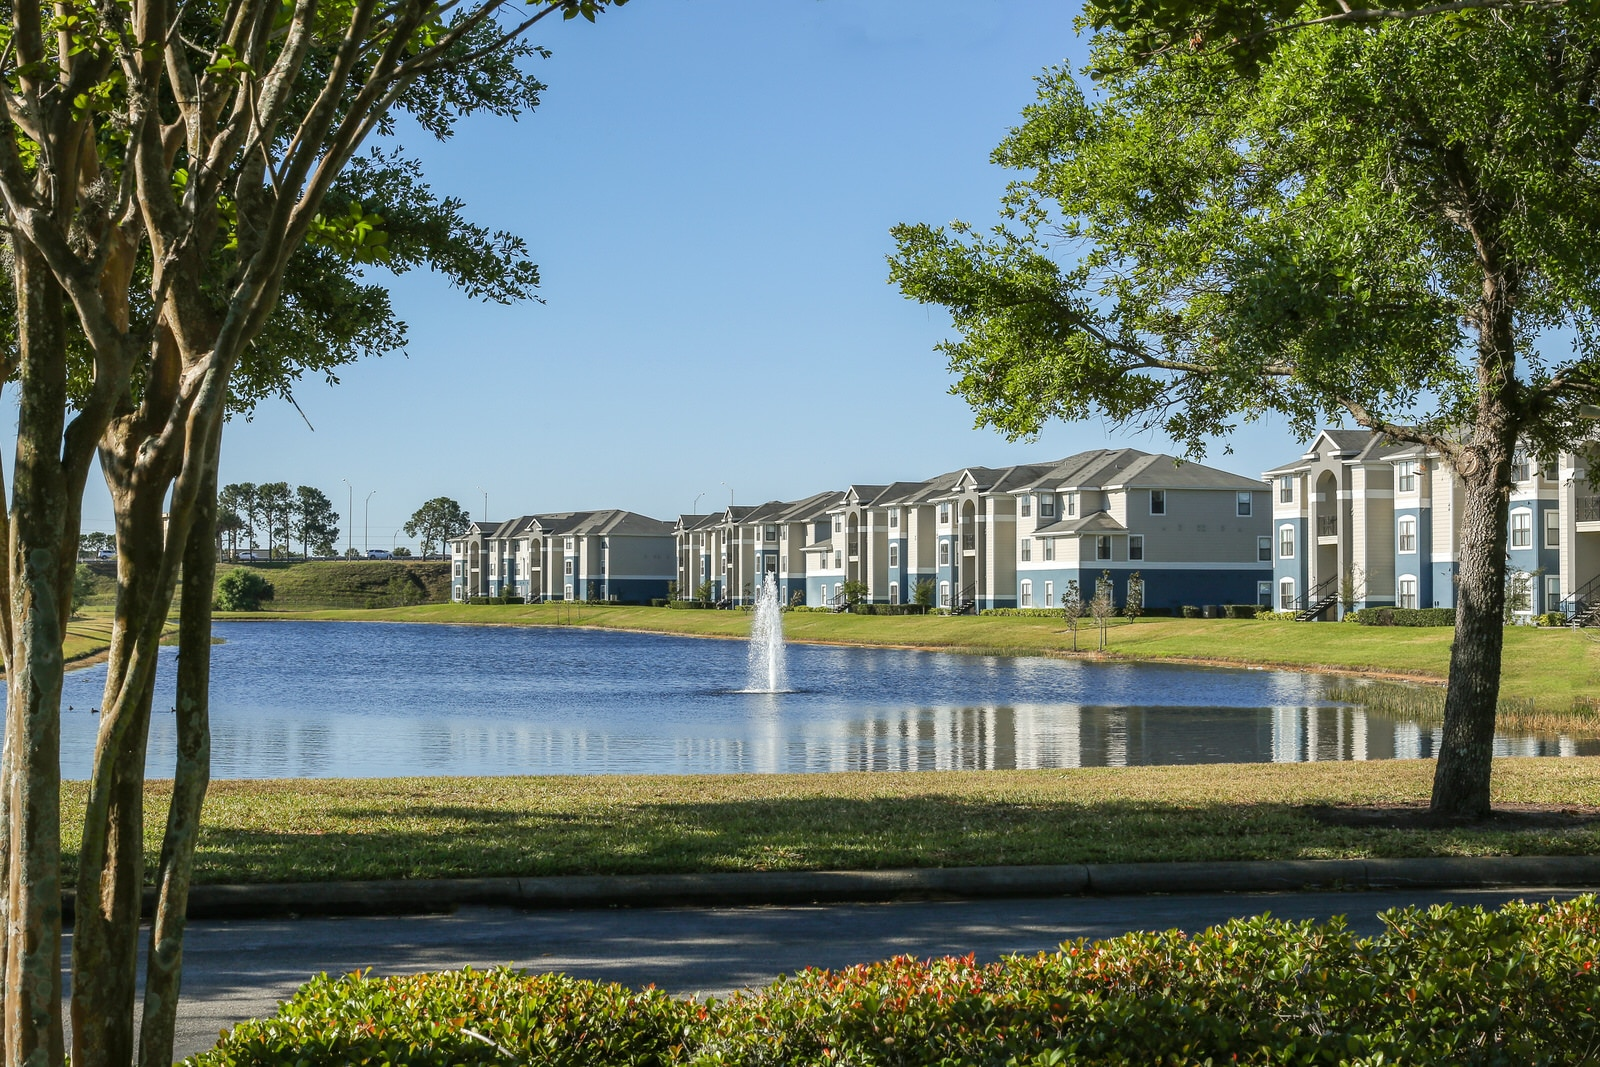 landscape shot of apartments in distance behind lake